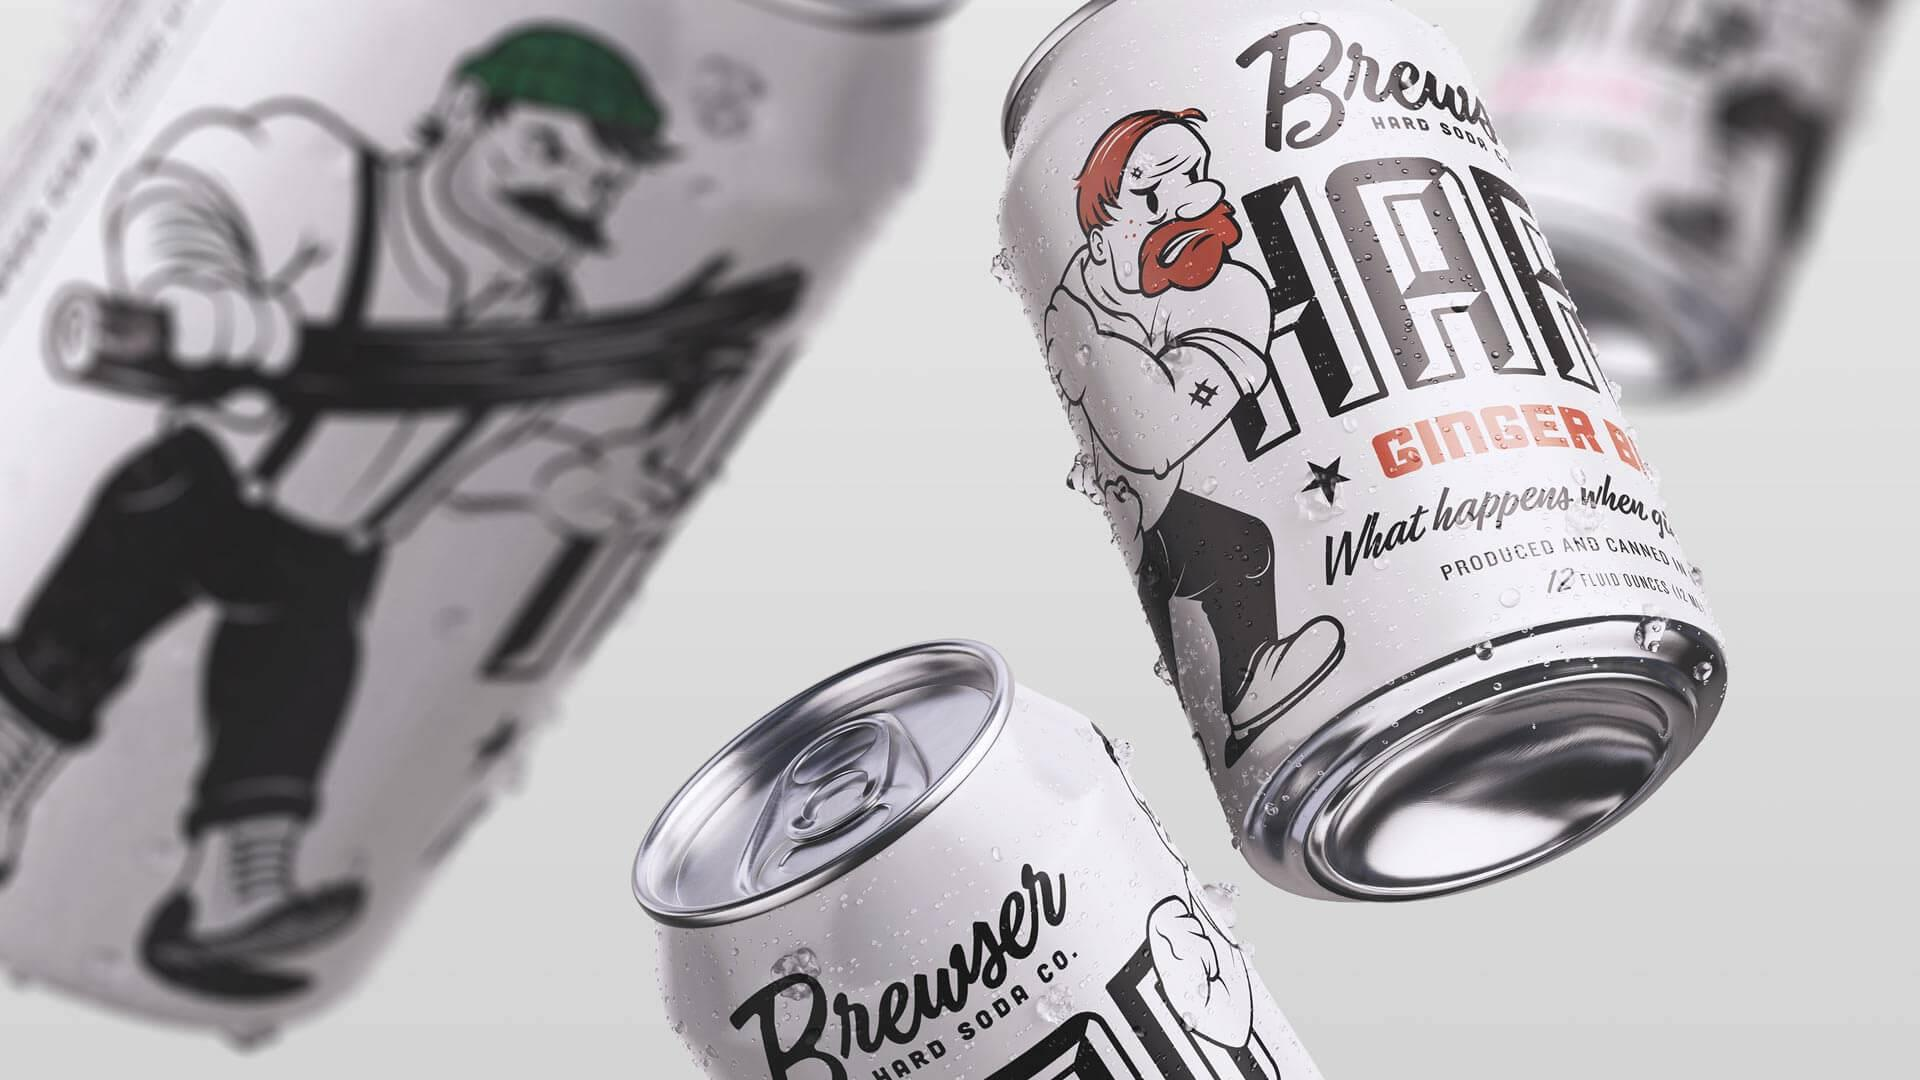 Brewser Hard Soda Co. :: Package design that packs a punch.